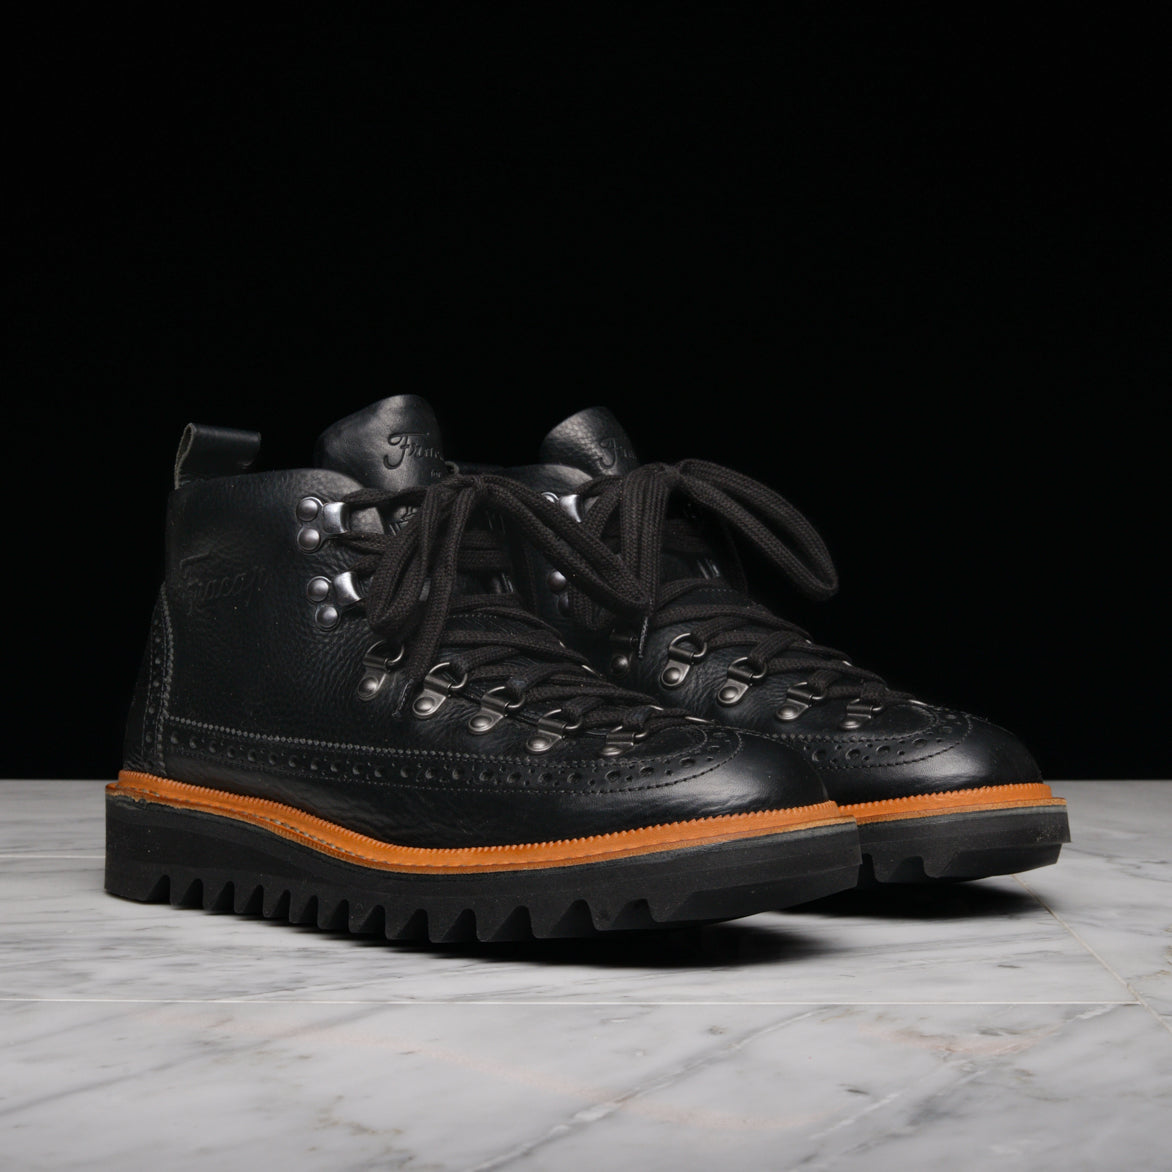 FRACAP FOR LAPSTONE & HAMMER M130 FUR-LINED BROGUE BOOT - BLACK